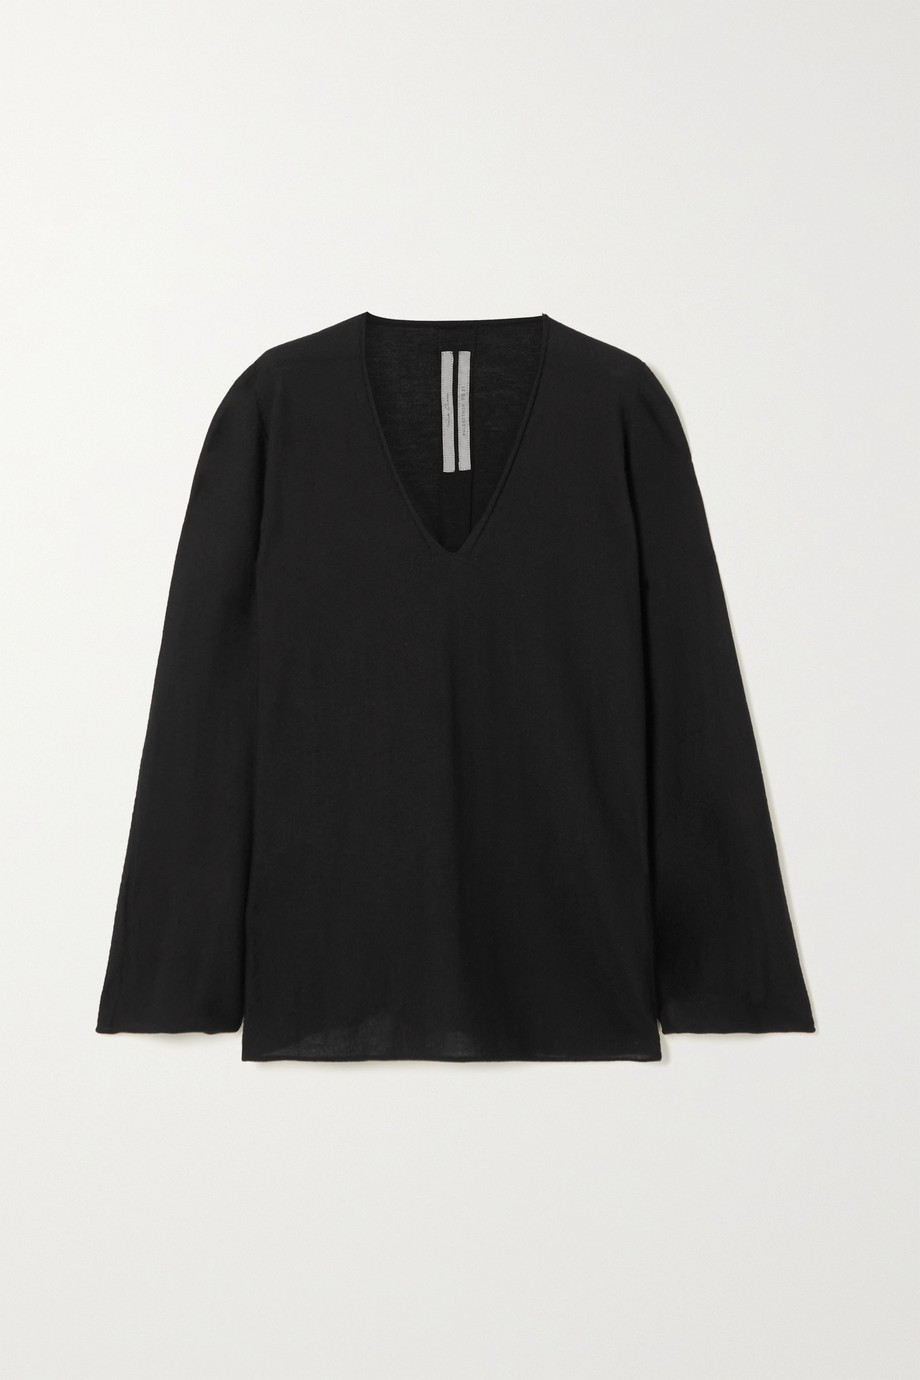 RICK OWENS Wool top